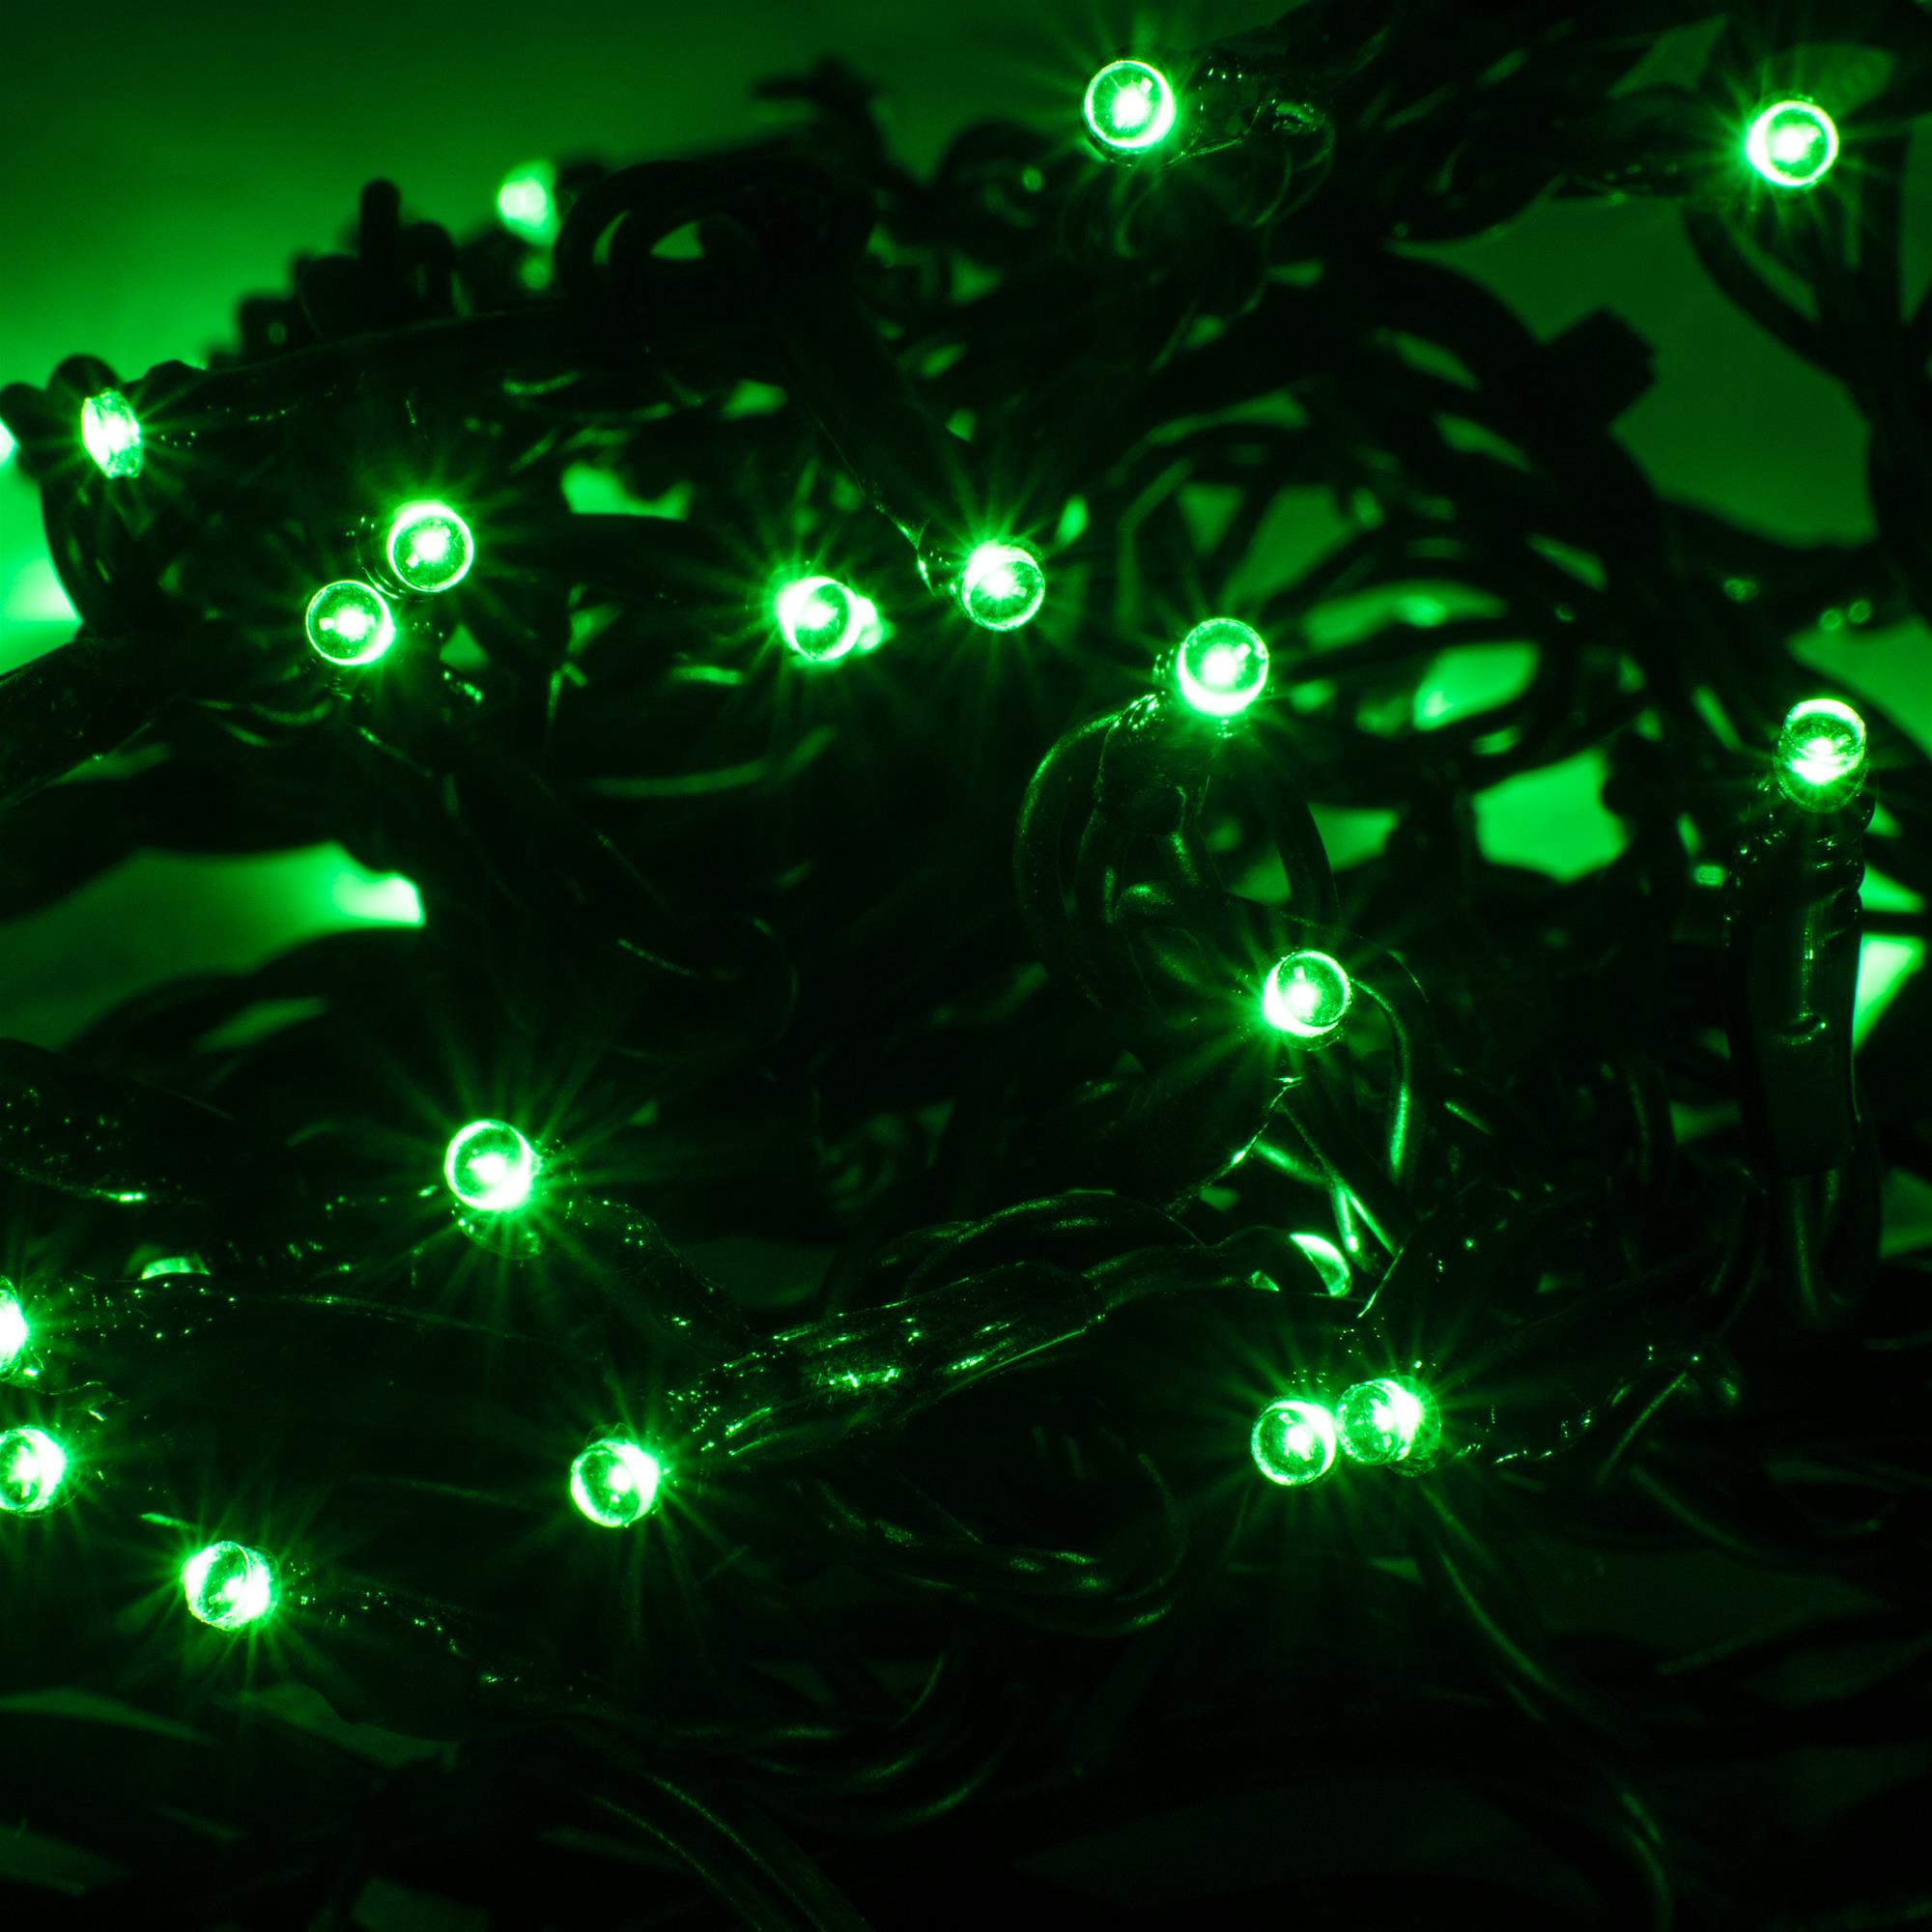 Led Miniature Christmas Lights 6m 60 Indoor Outdoor 24v Green Black Cable